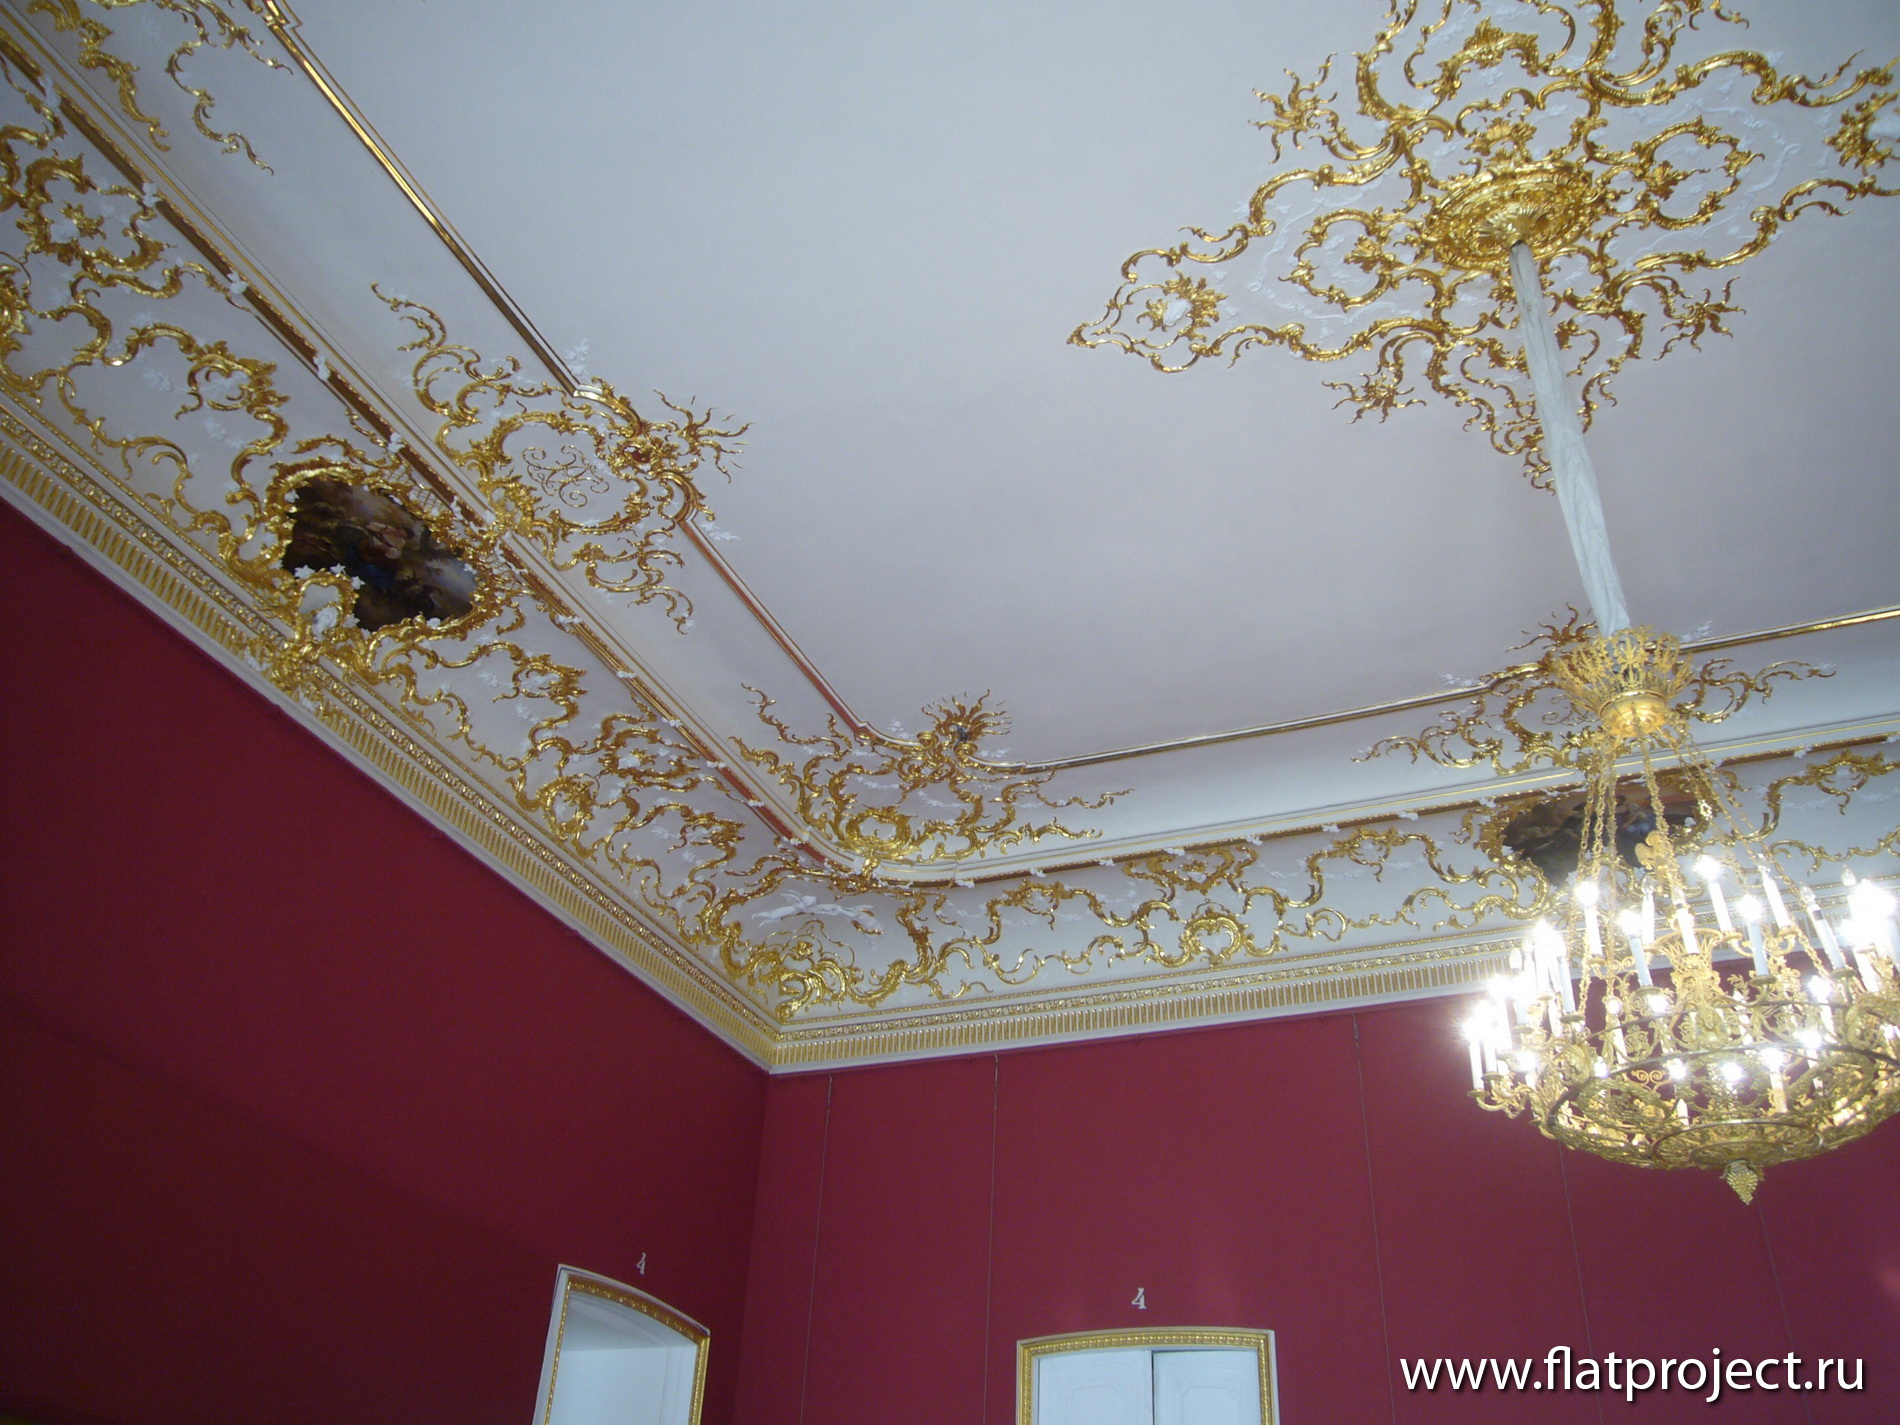 The State Russian museum interiors – photo 1